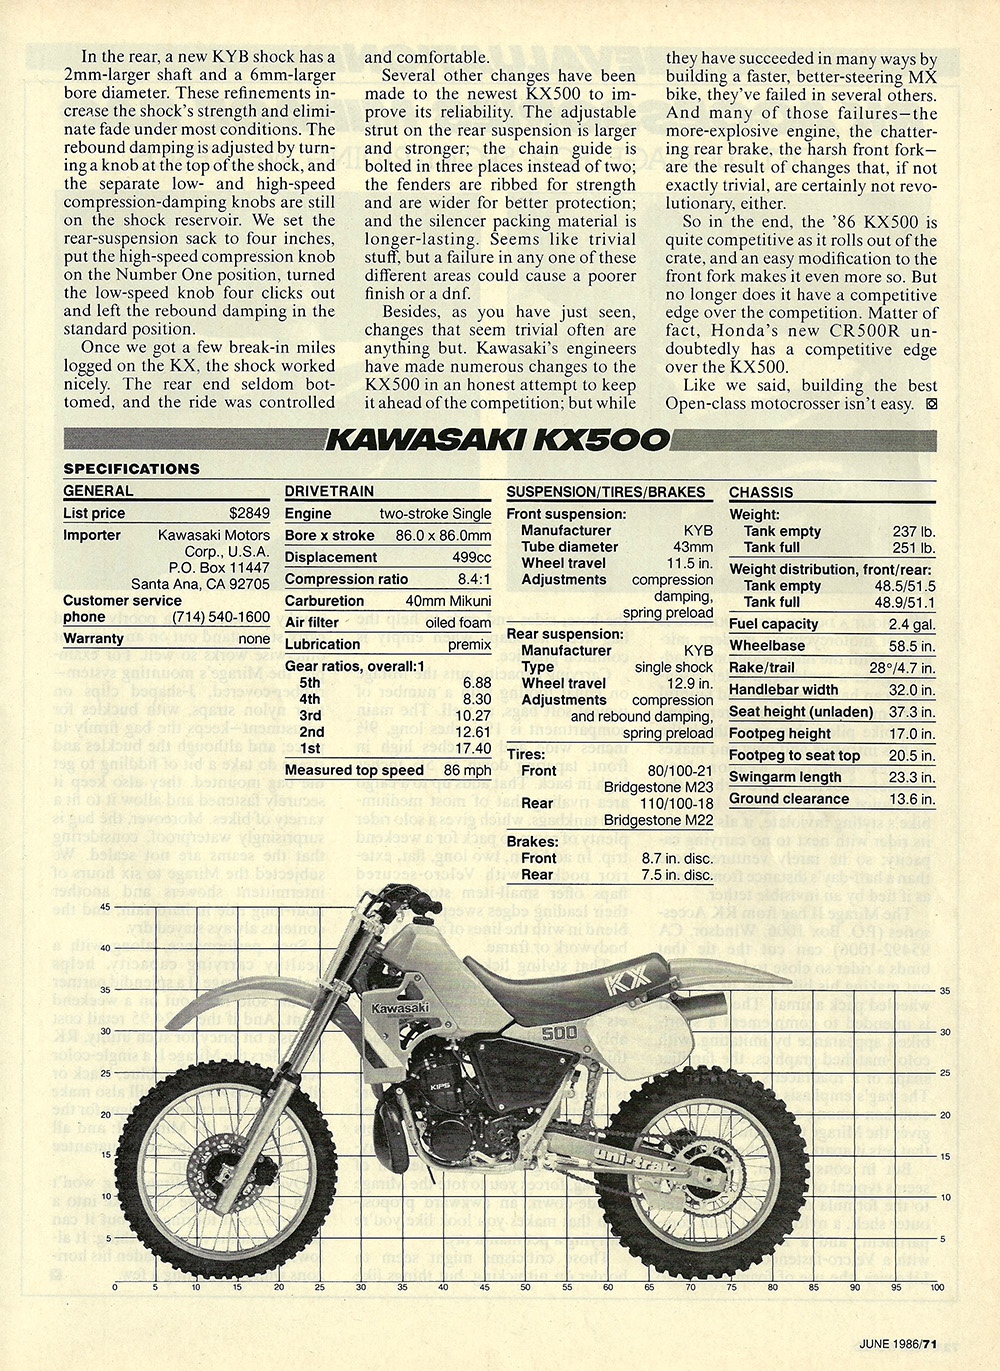 1986 Kawasaki KX500 road test 04.jpg